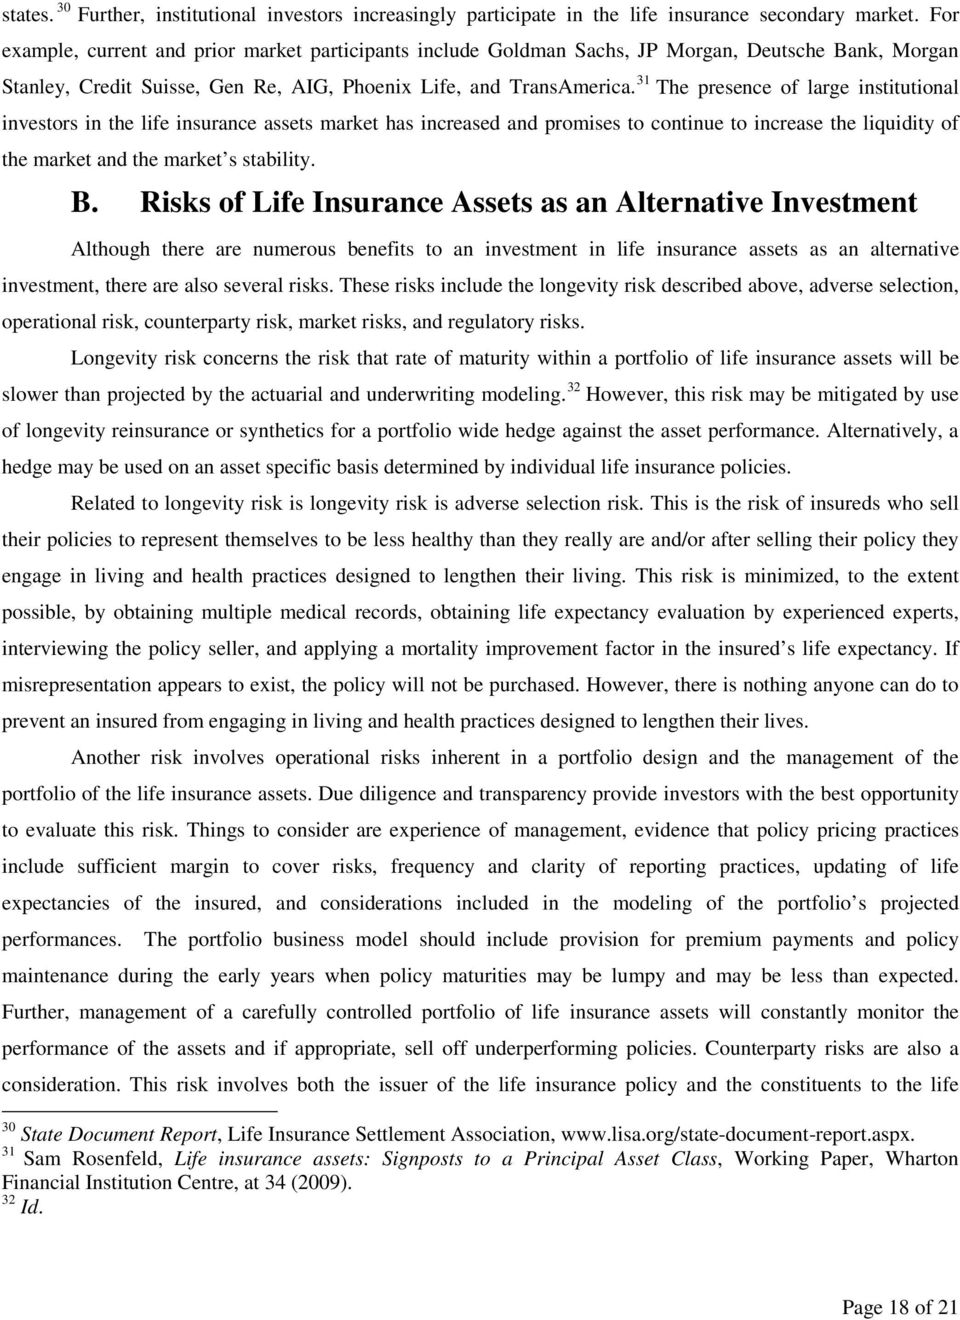 31 The presence of large institutional investors in the life insurance assets market has increased and promises to continue to increase the liquidity of the market and the market s stability. B.